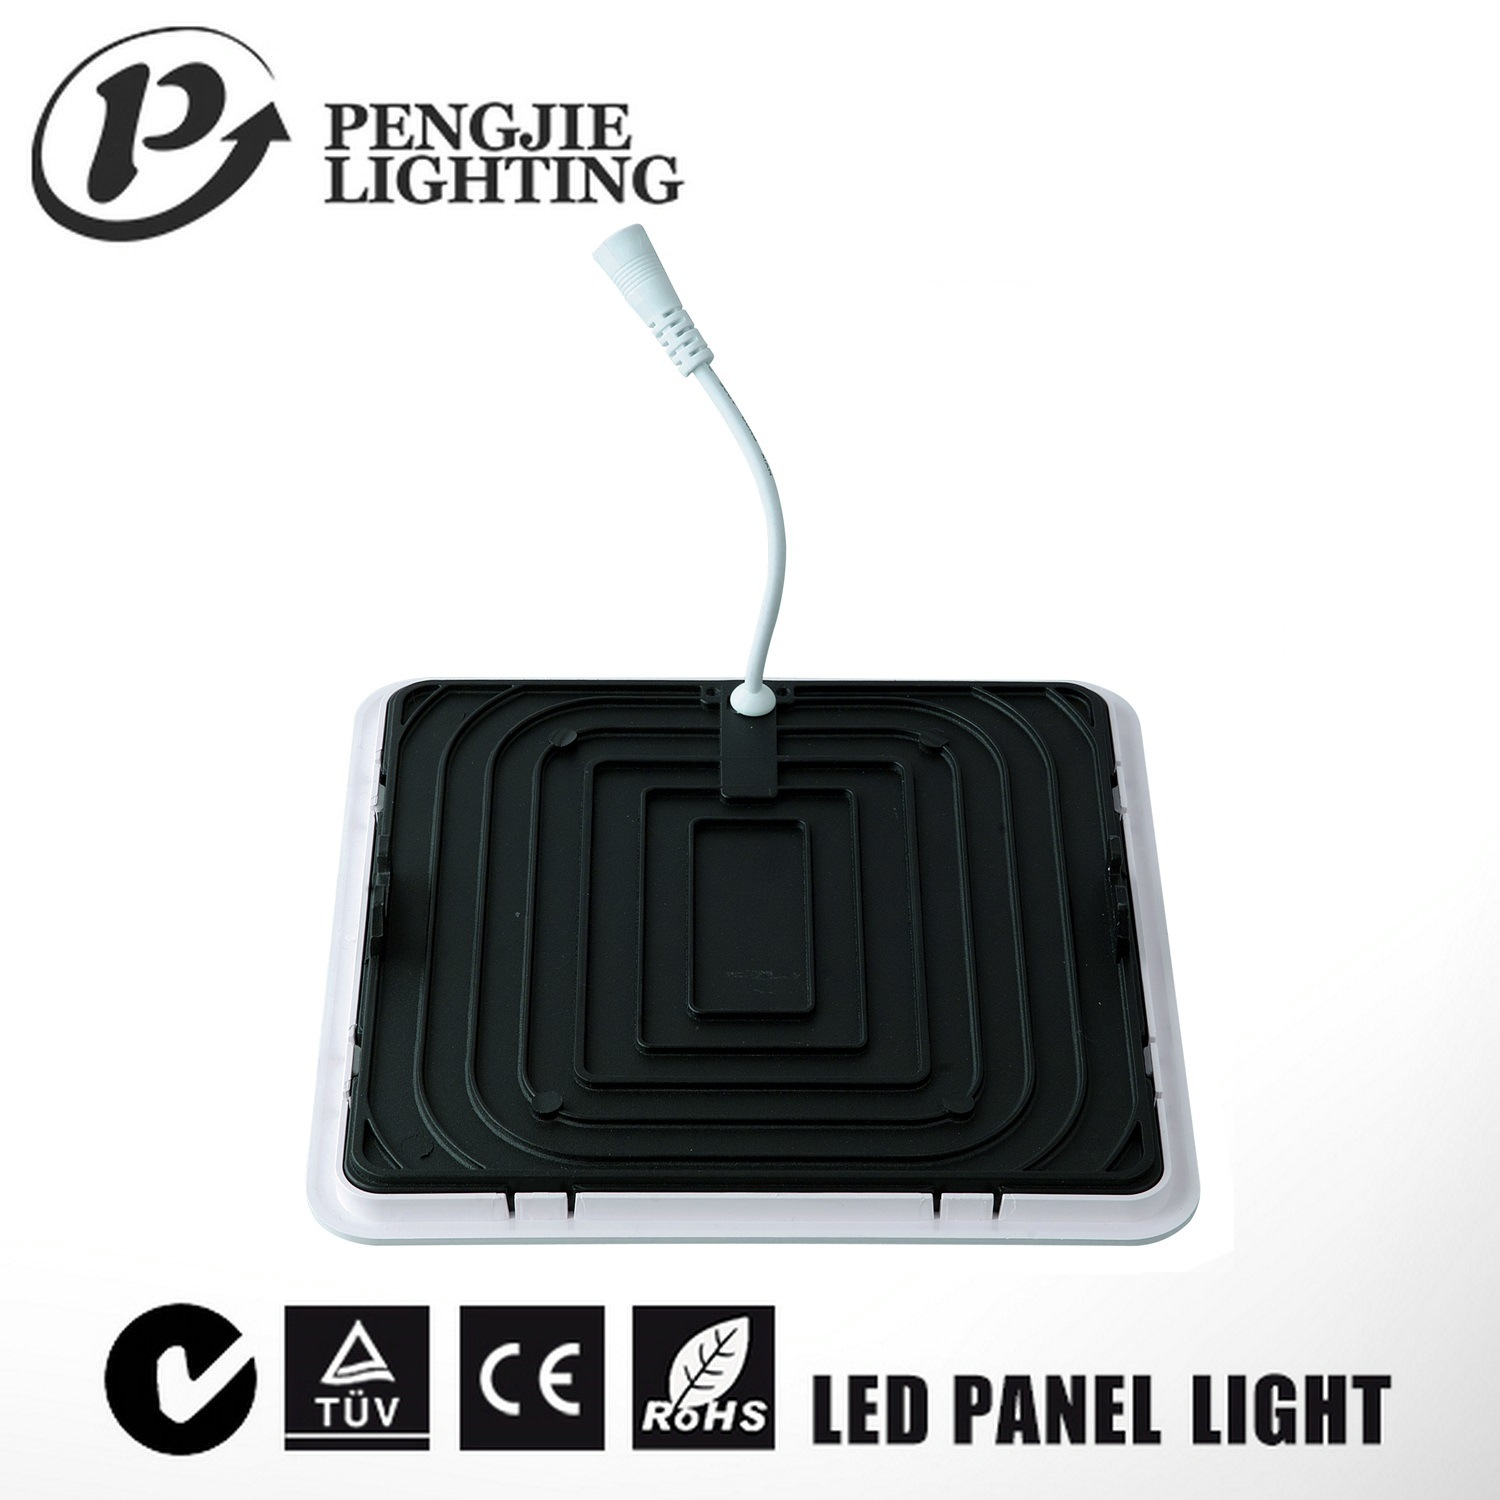 Hot Selling High Lumen 24W LED Panel Light for Office